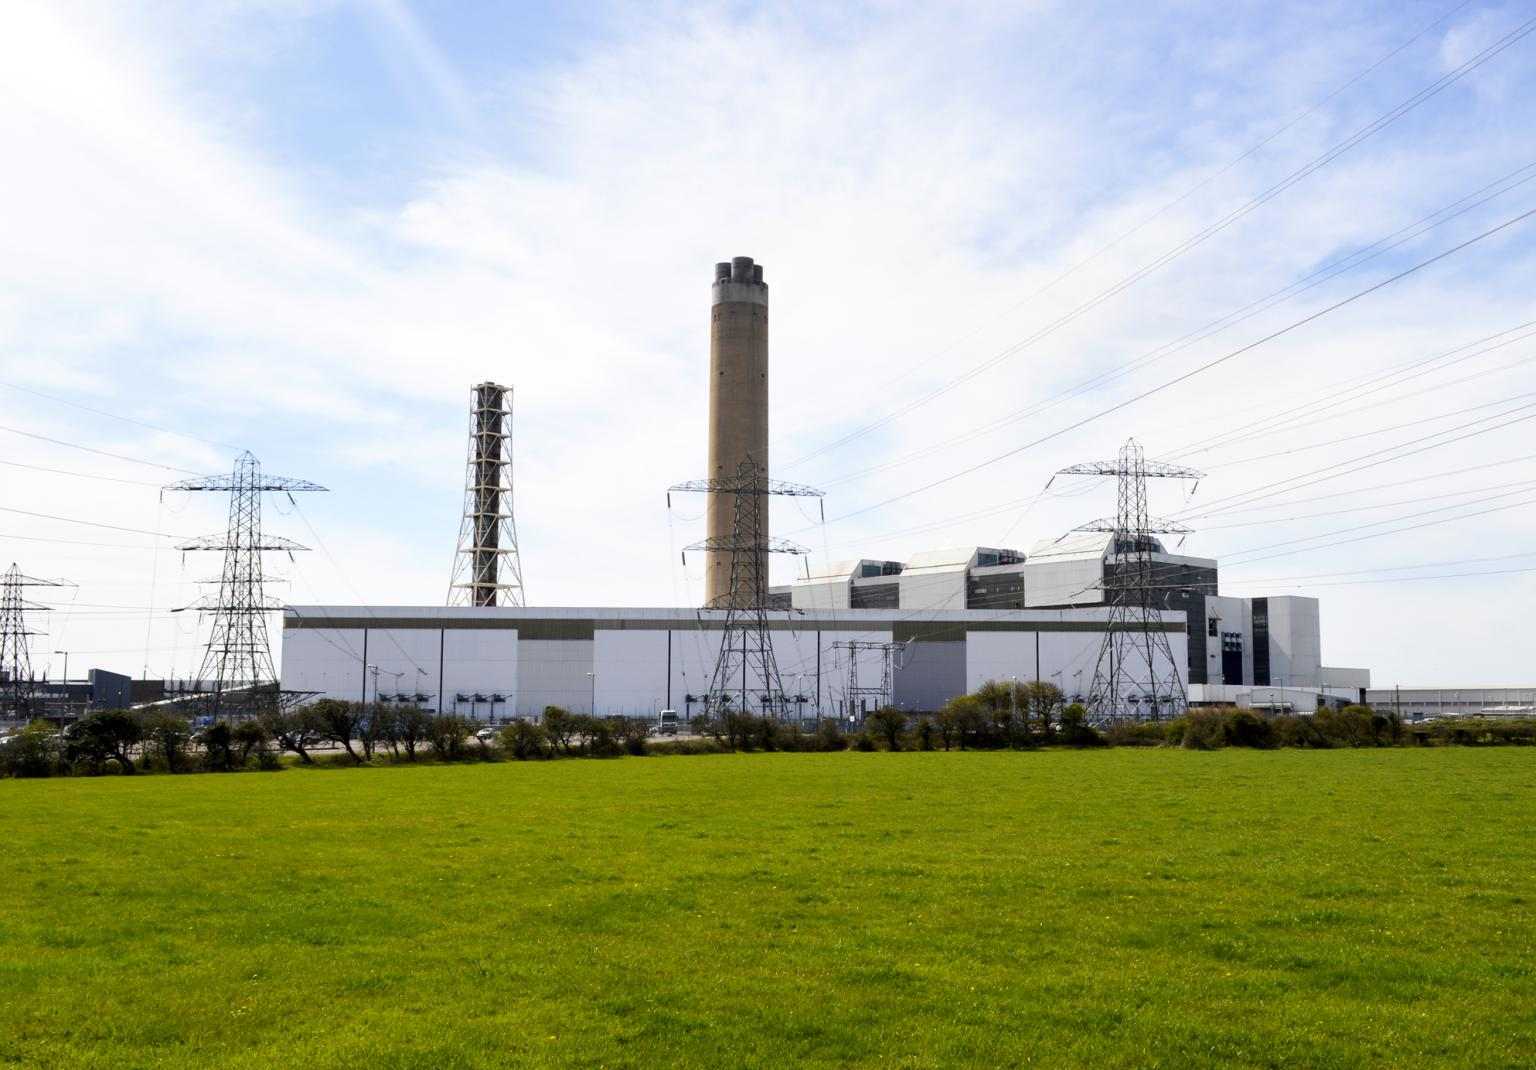 Aberthaw Power Station in South Wales